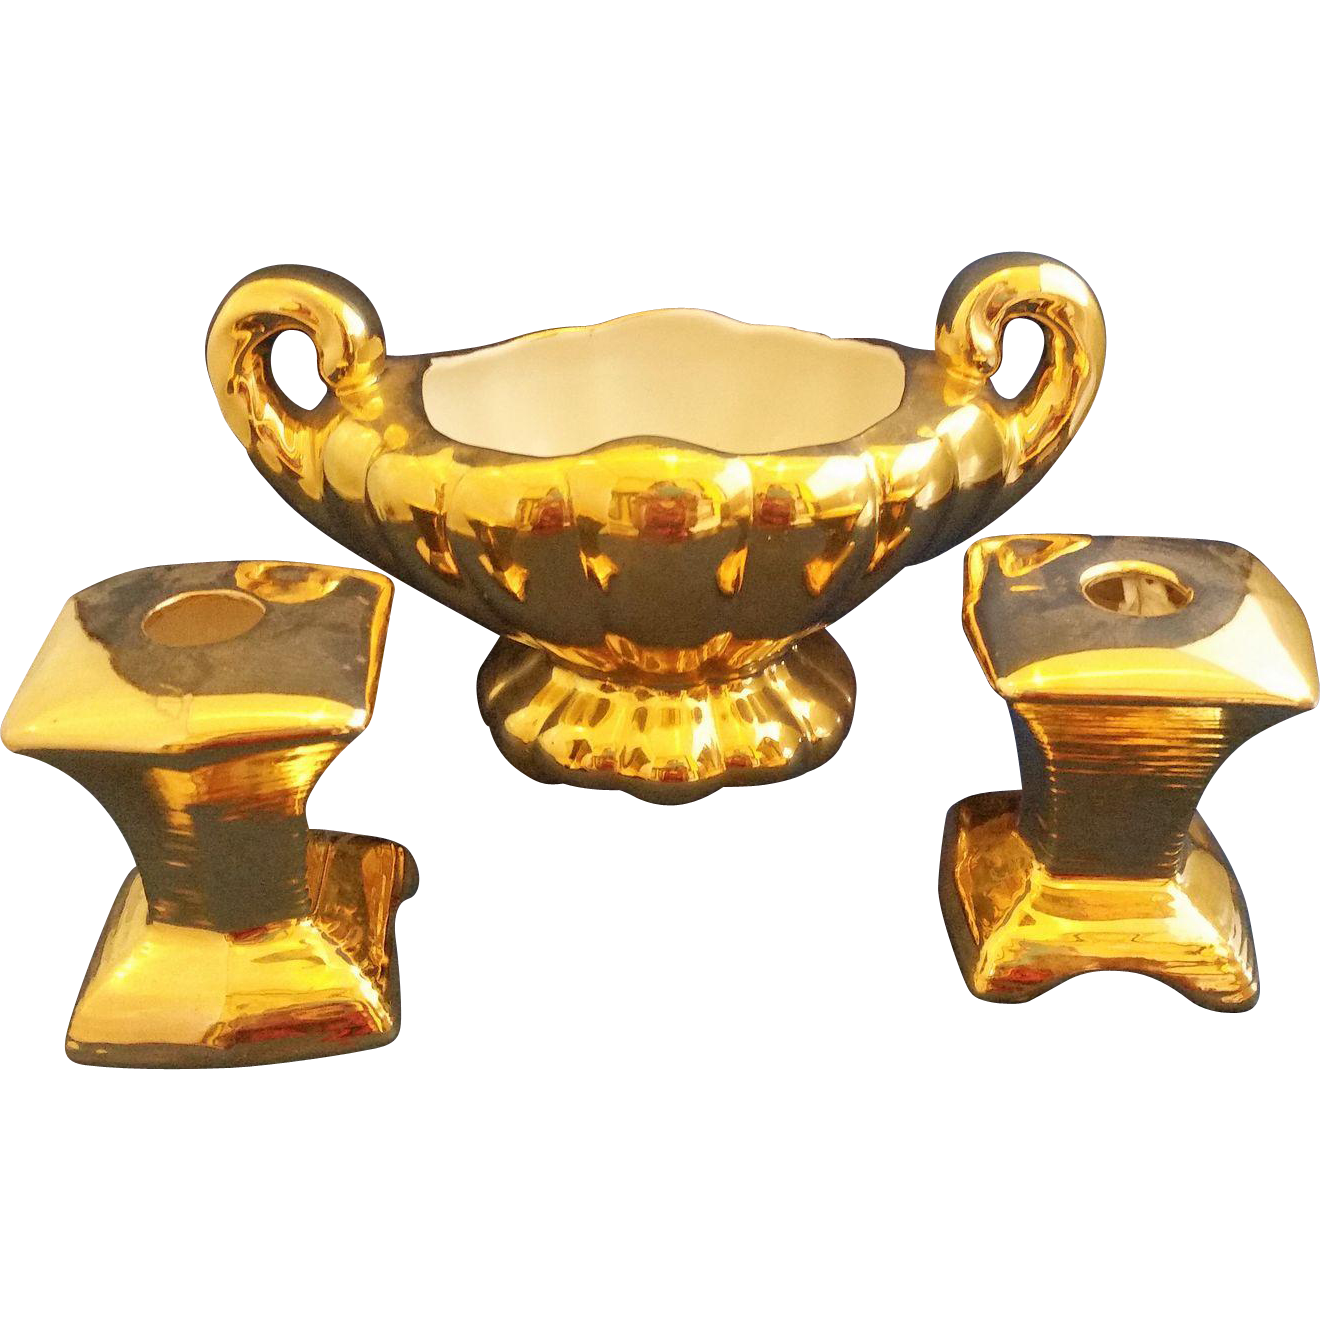 Gilded Gilt Gold Encrusted Console Set Oval Scalloped Bowl Square Candle Holders